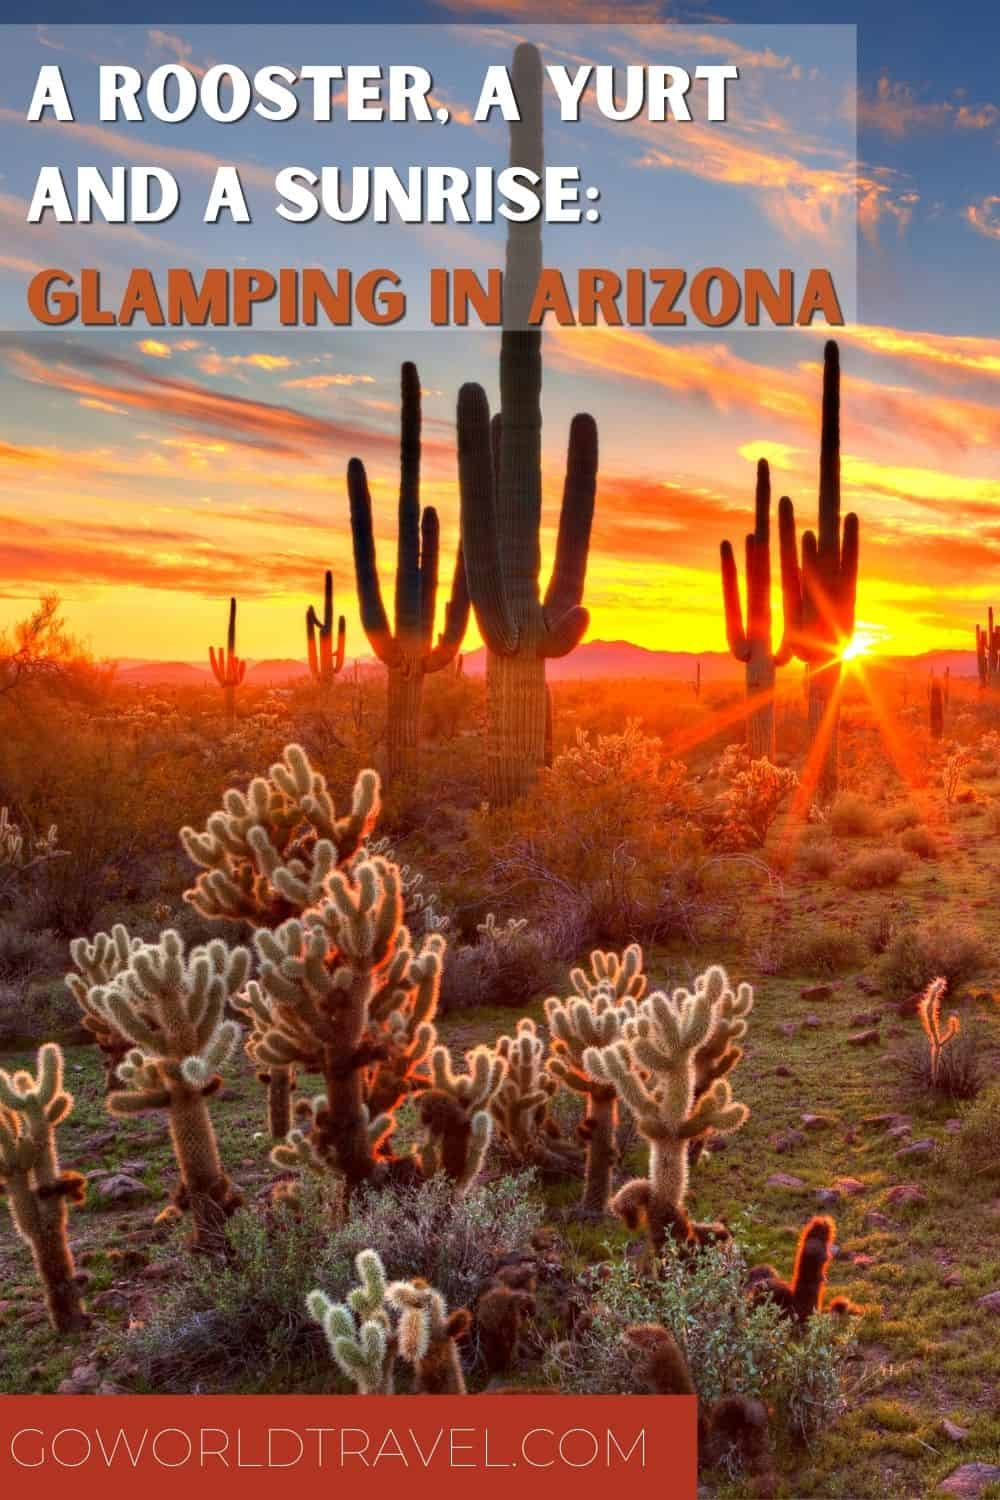 Pack your bag and get ready to go on an open-air adventure: glamping in Arizona. Here you'll visit a unique yurt with a rooster on a mini-farm.